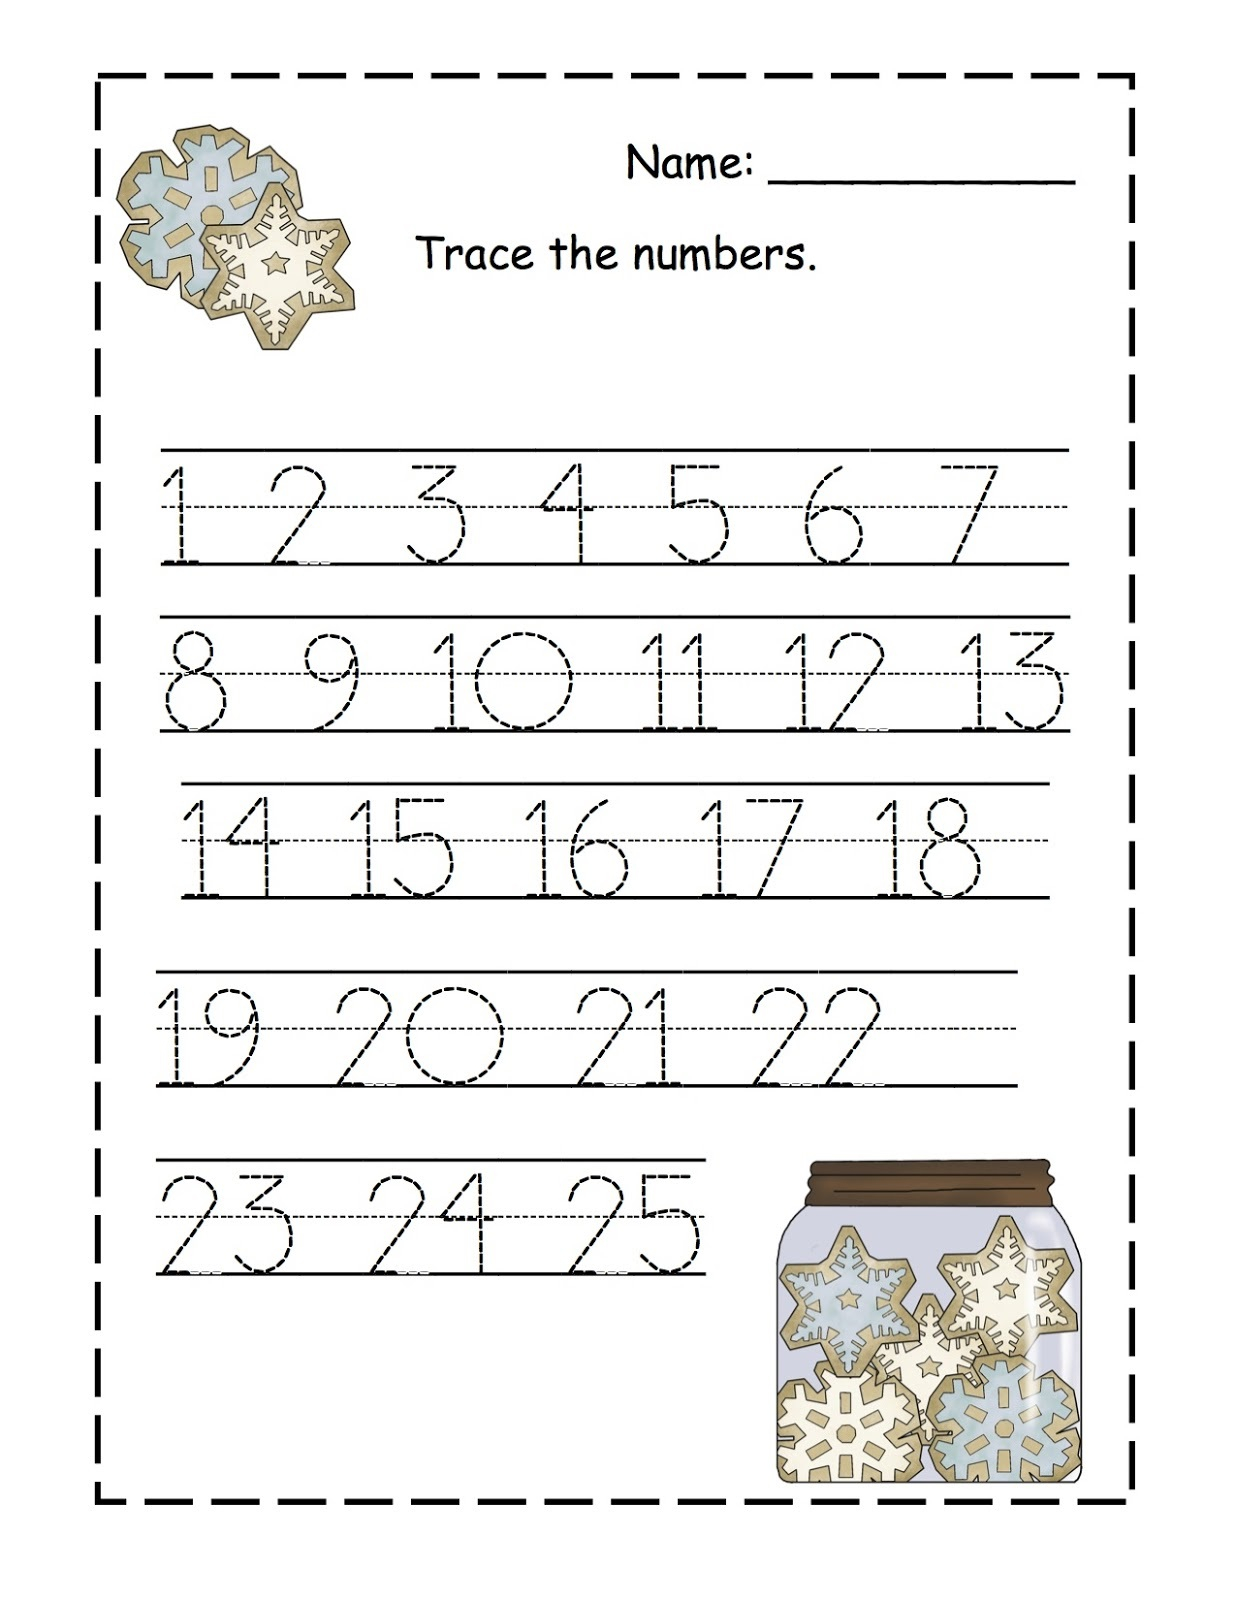 Free Tracing Worksheets Make Your Own Printable Alphabet throughout Name Tracing Worksheets For Kindergarten